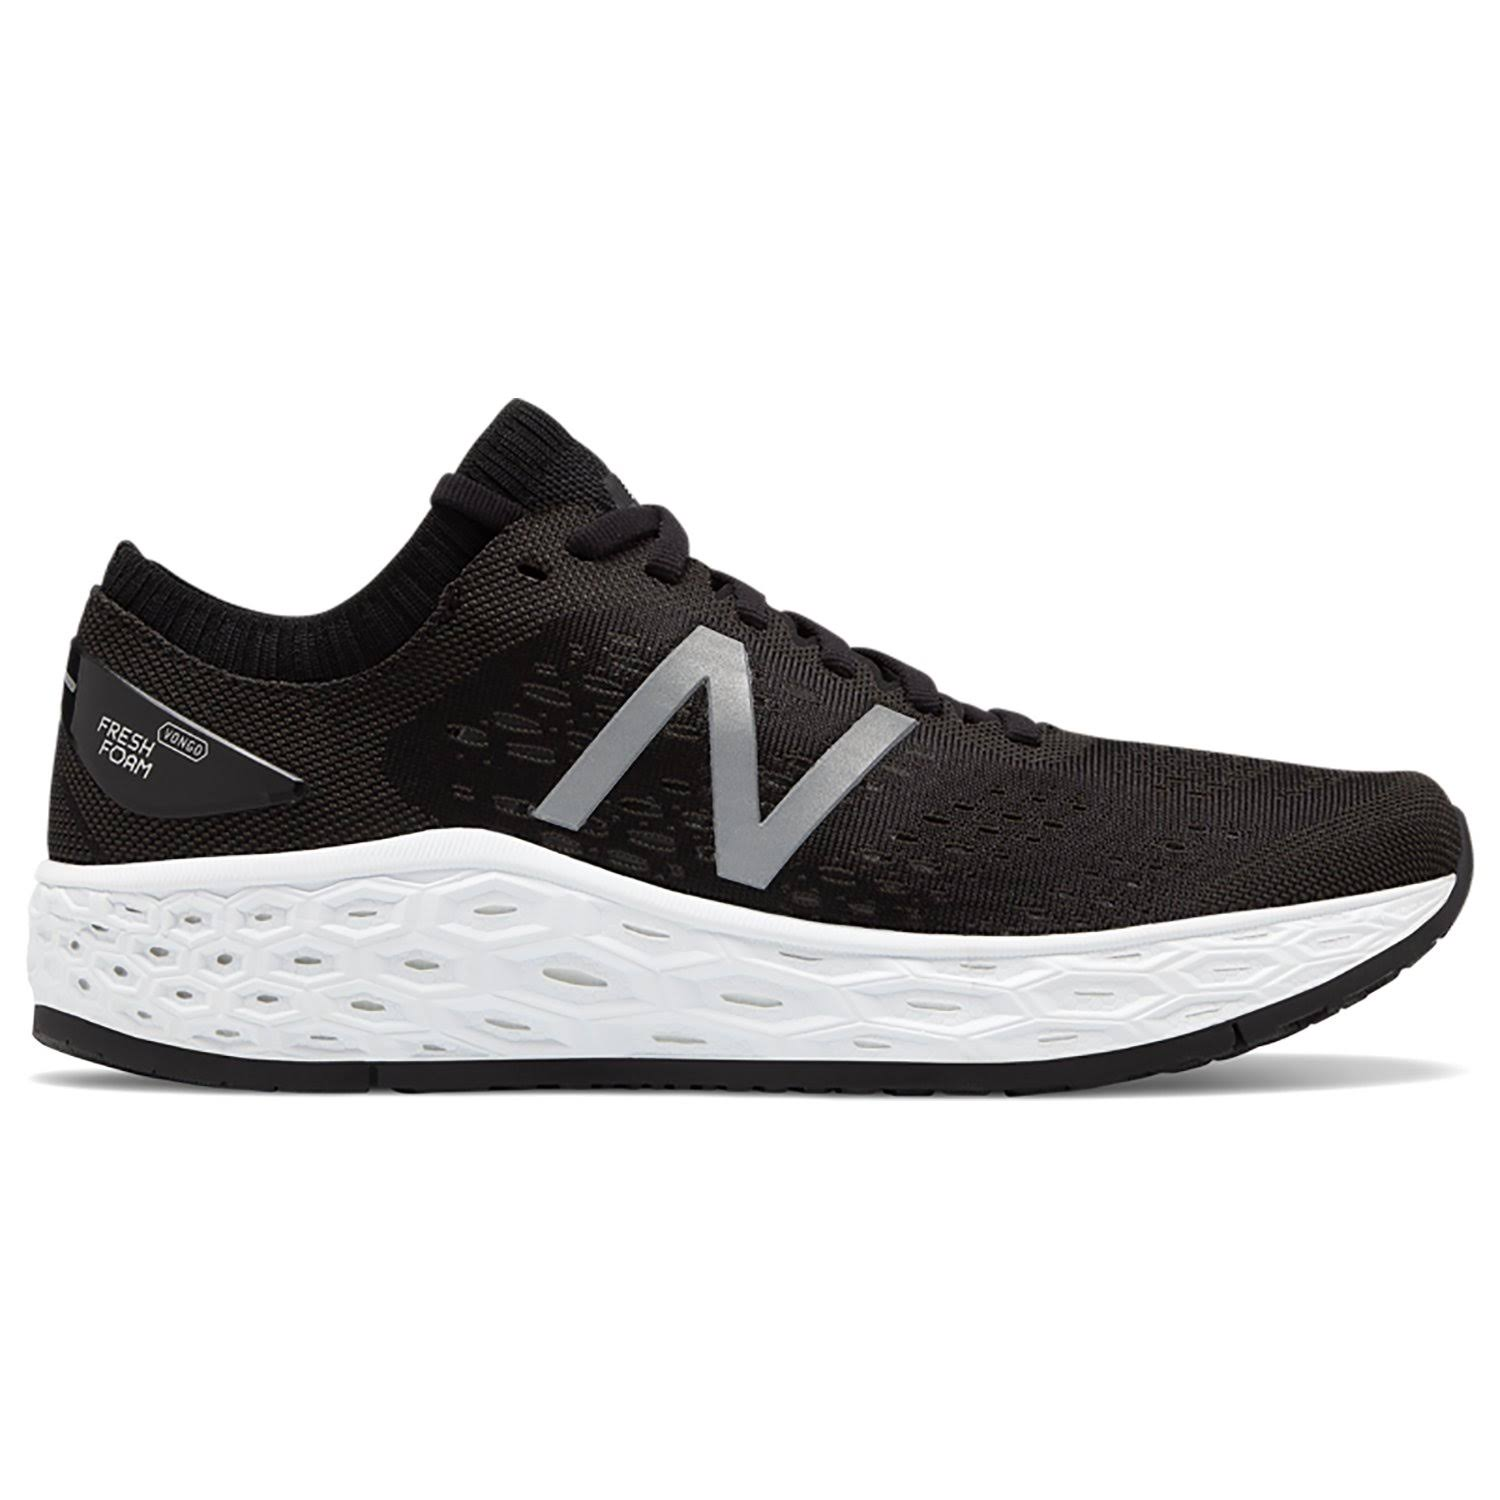 New Balance Fresh Foam Vongo v4 8.5 Women's Black